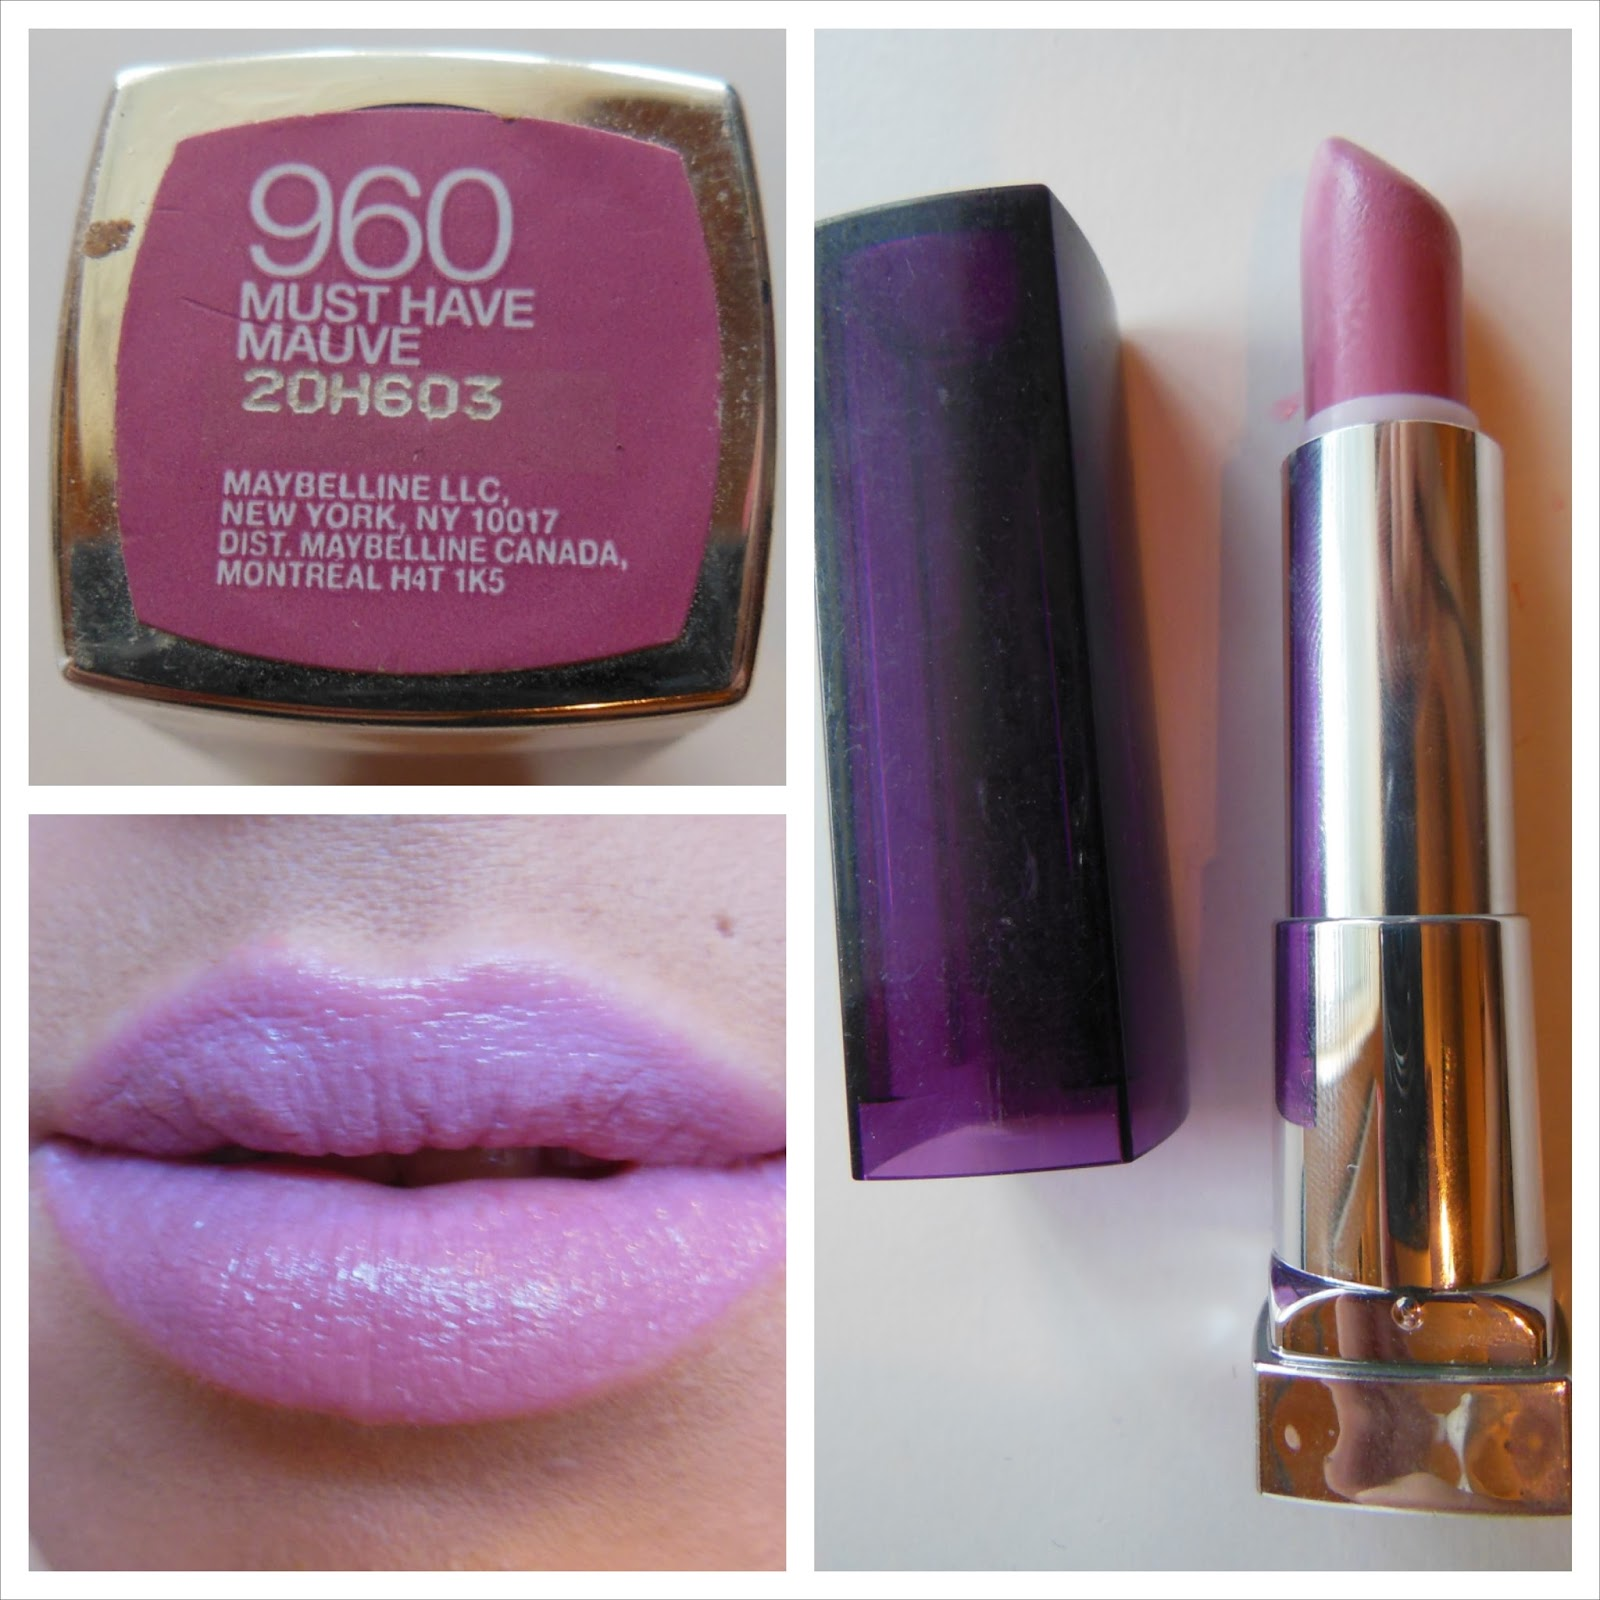 Maybelline Light Purple Lipstick | The Art Of Beauty